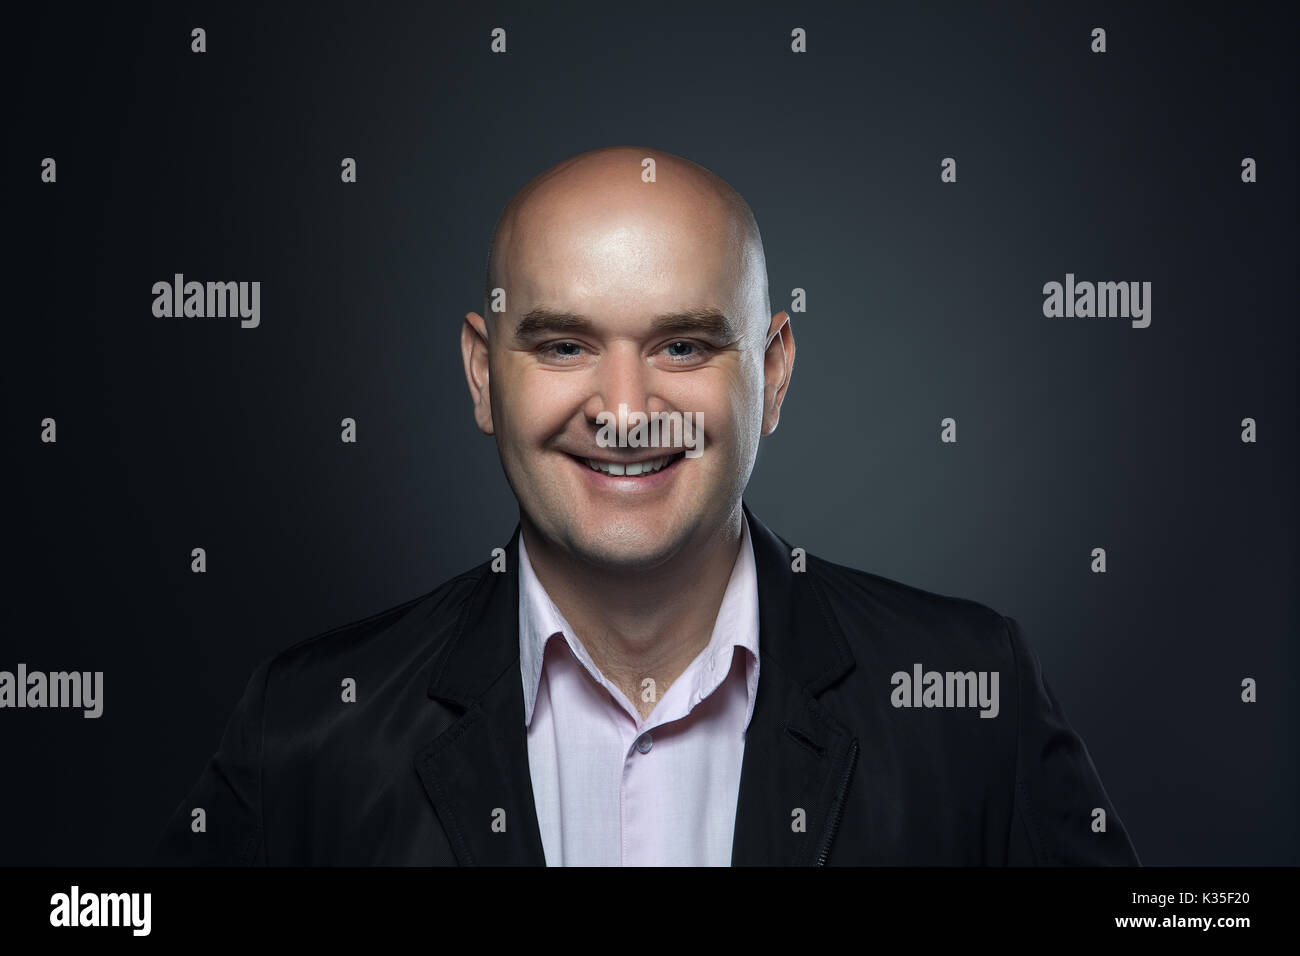 Portrait of a bald smiling, affable man in a suit against a dark background - Stock Image